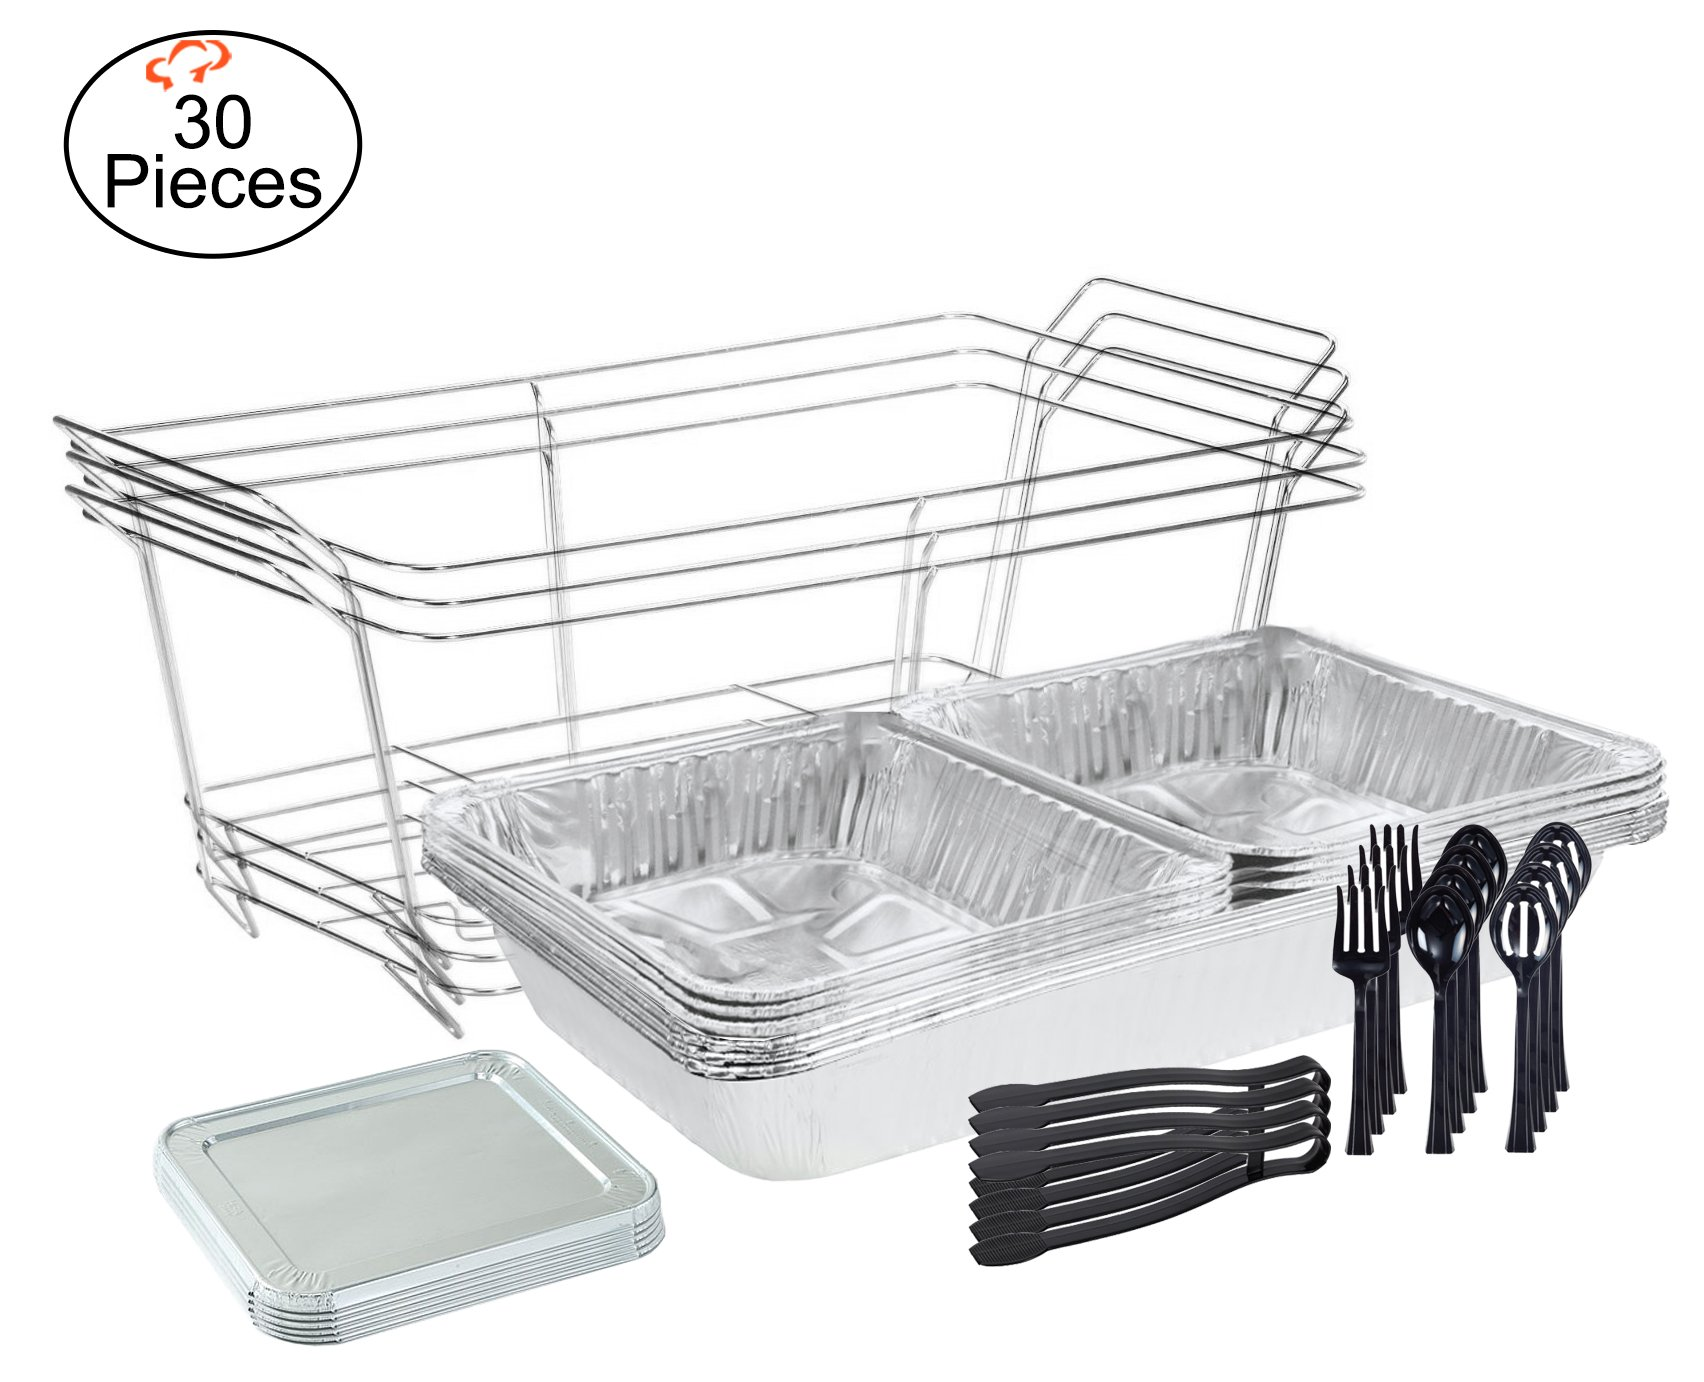 Tiger Chef 30-Piece Catering Set Serving Dishes for Parties Includes Chafer Pans Set and Disposable Serving Utensils, Spoons and Tongs for all parties, events including Birthday, Holiday, Weddings, by Tiger Chef